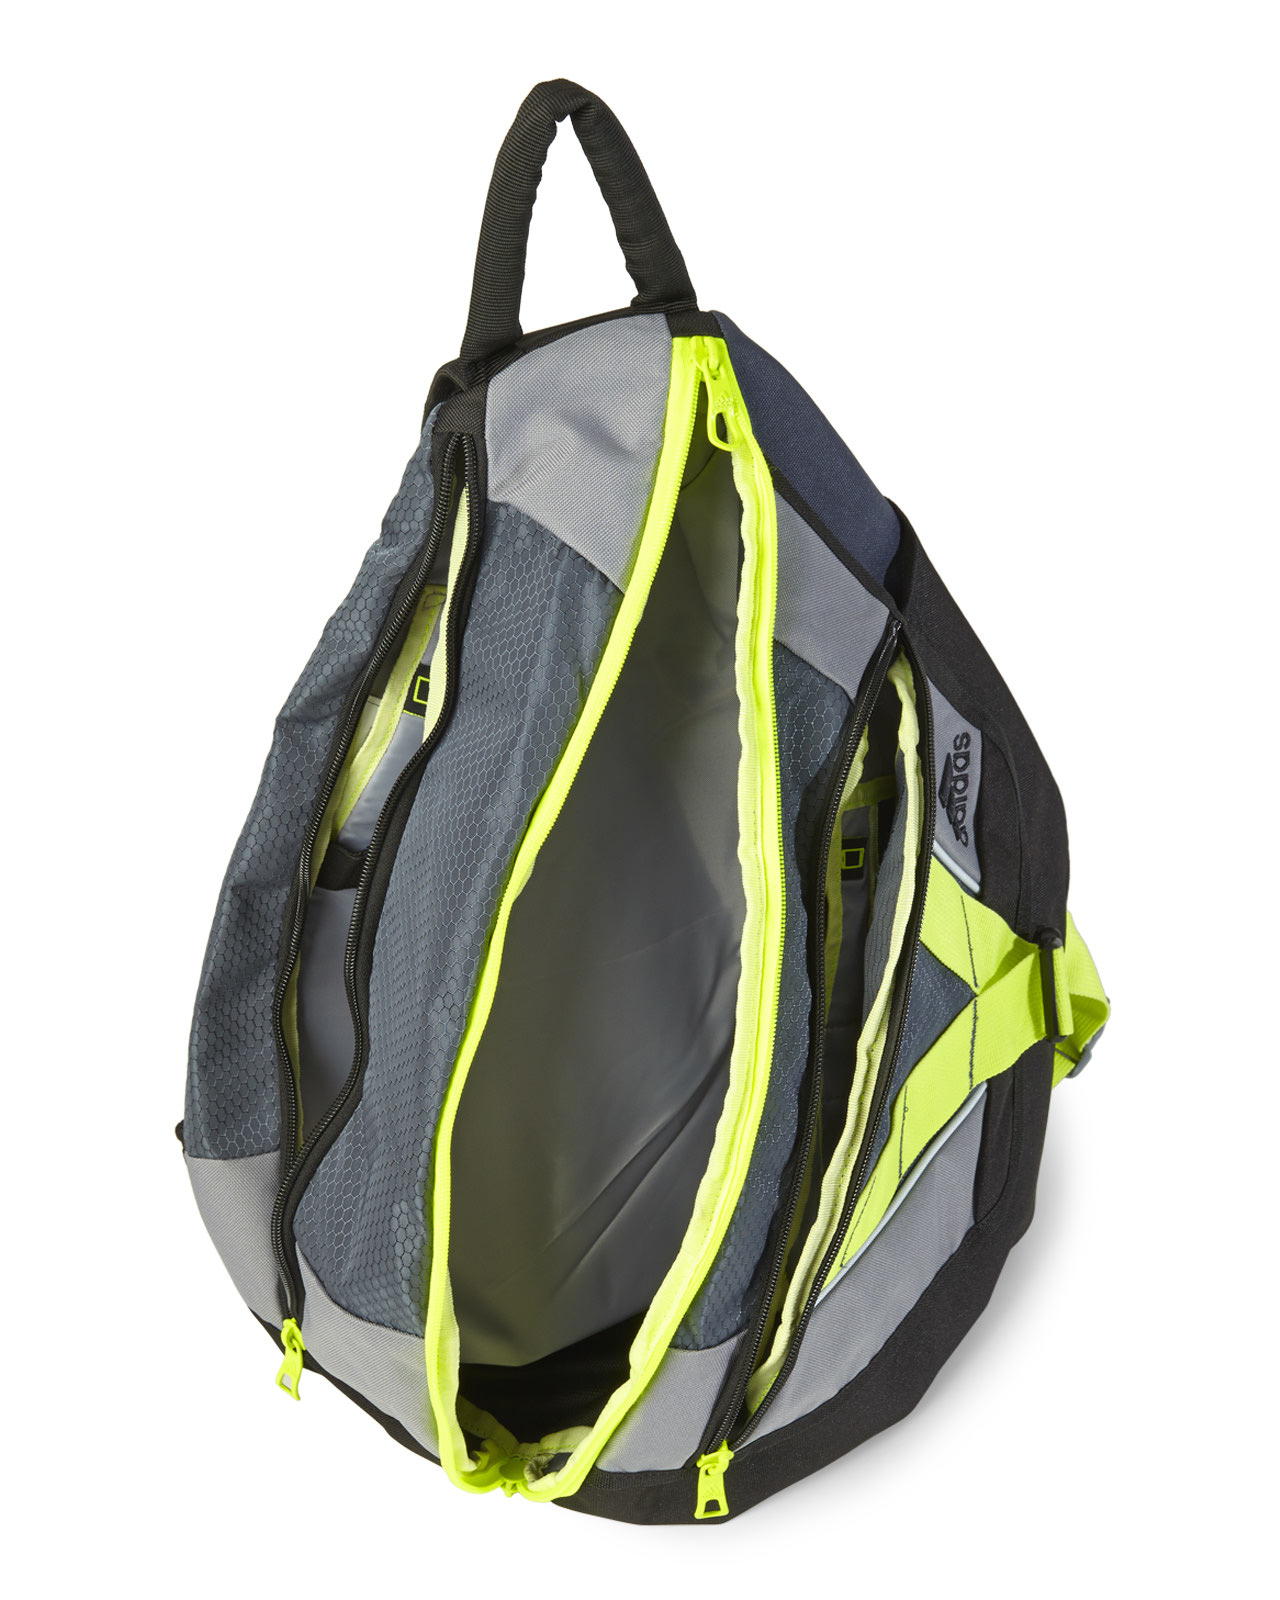 e3585d25cac6 Adidas One Strap Backpack- Fenix Toulouse Handball